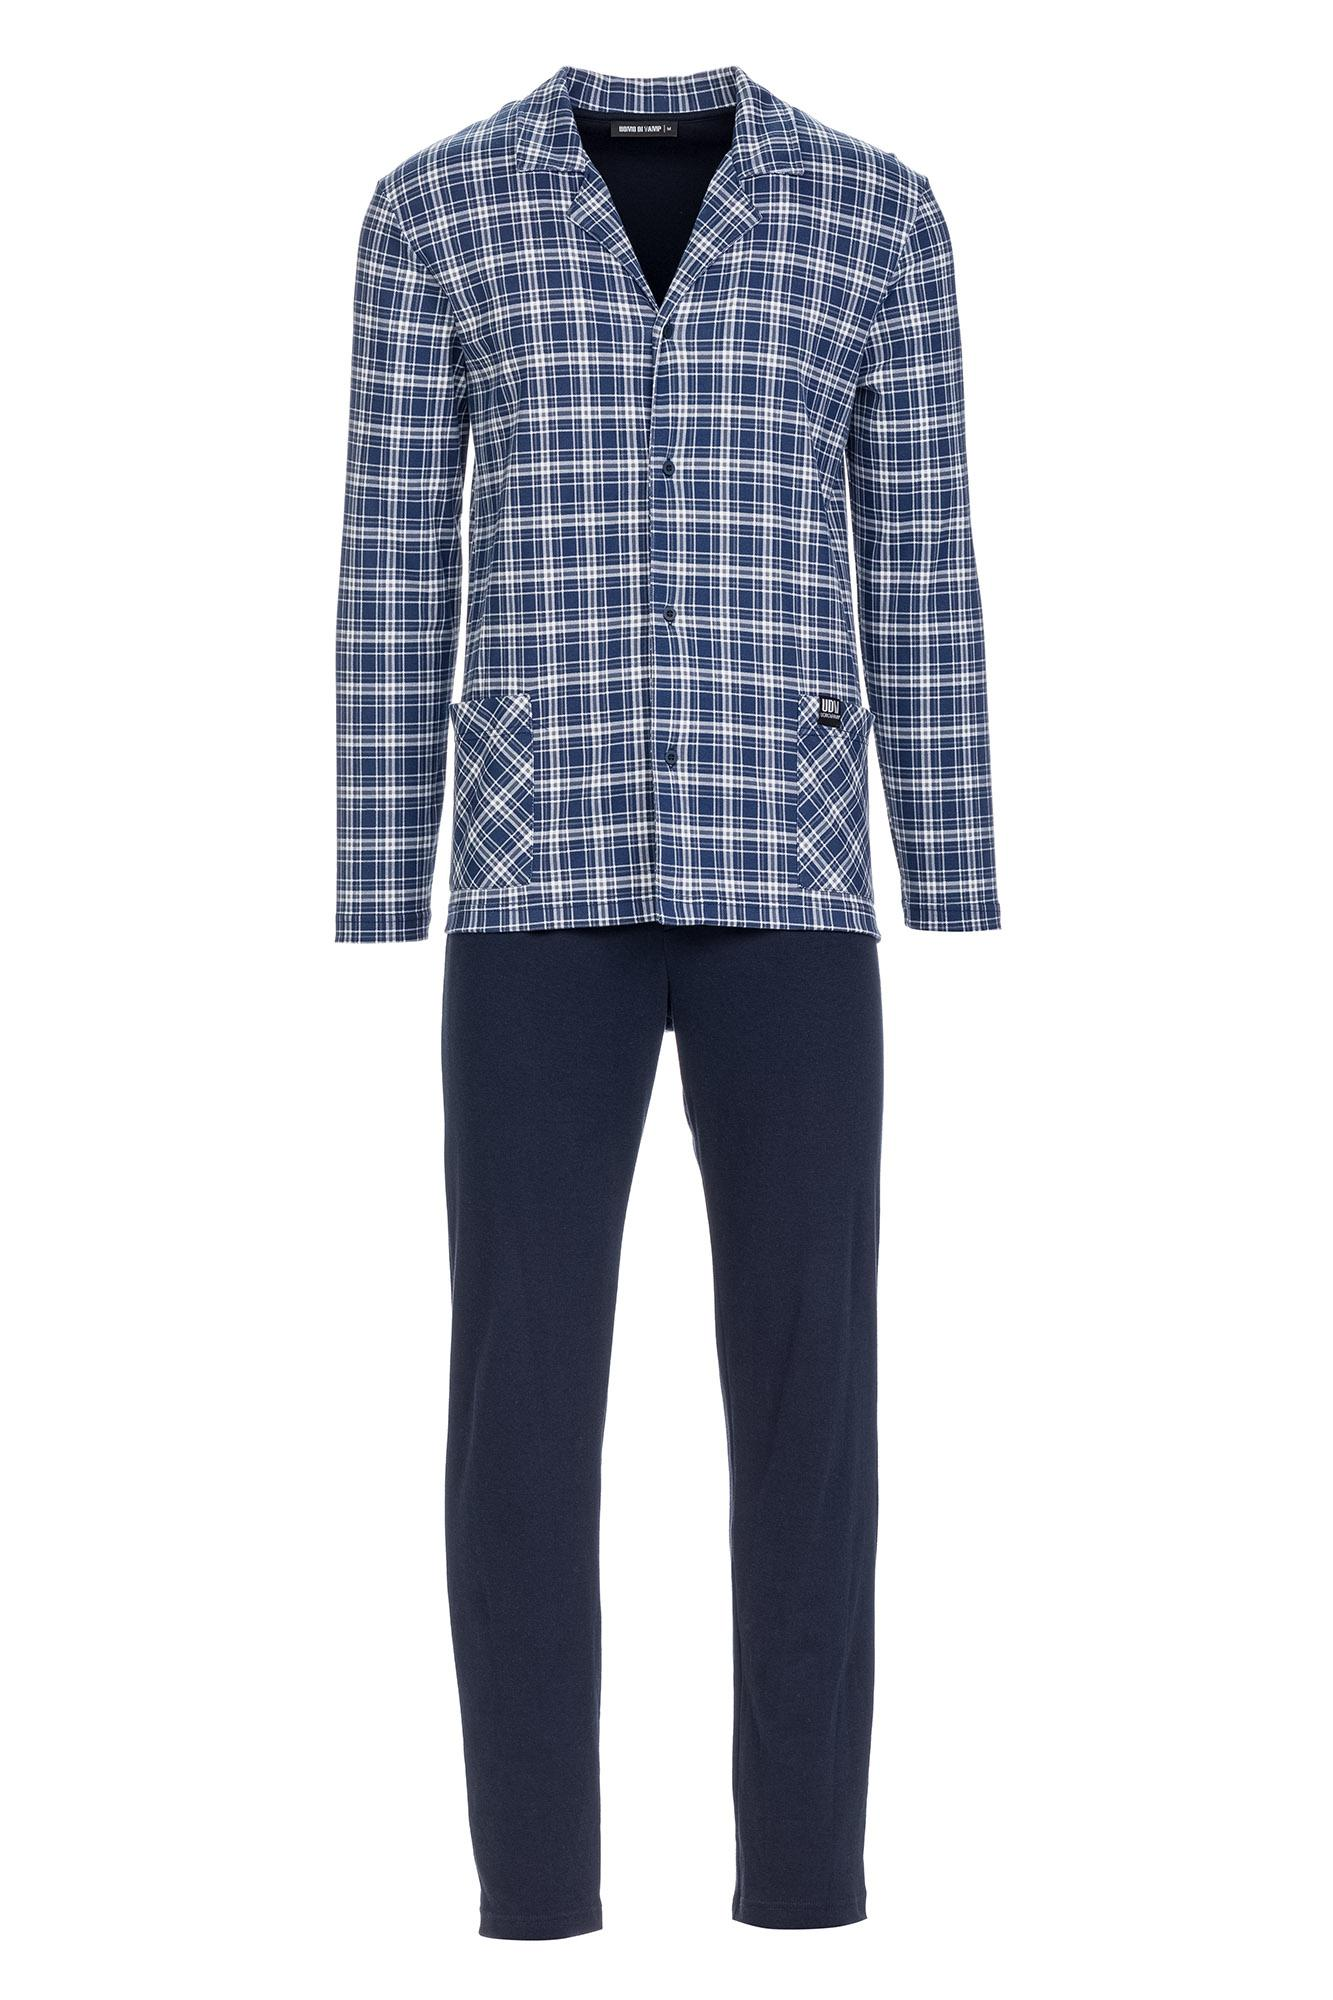 Men's Plaid Buttoned Pyjamas